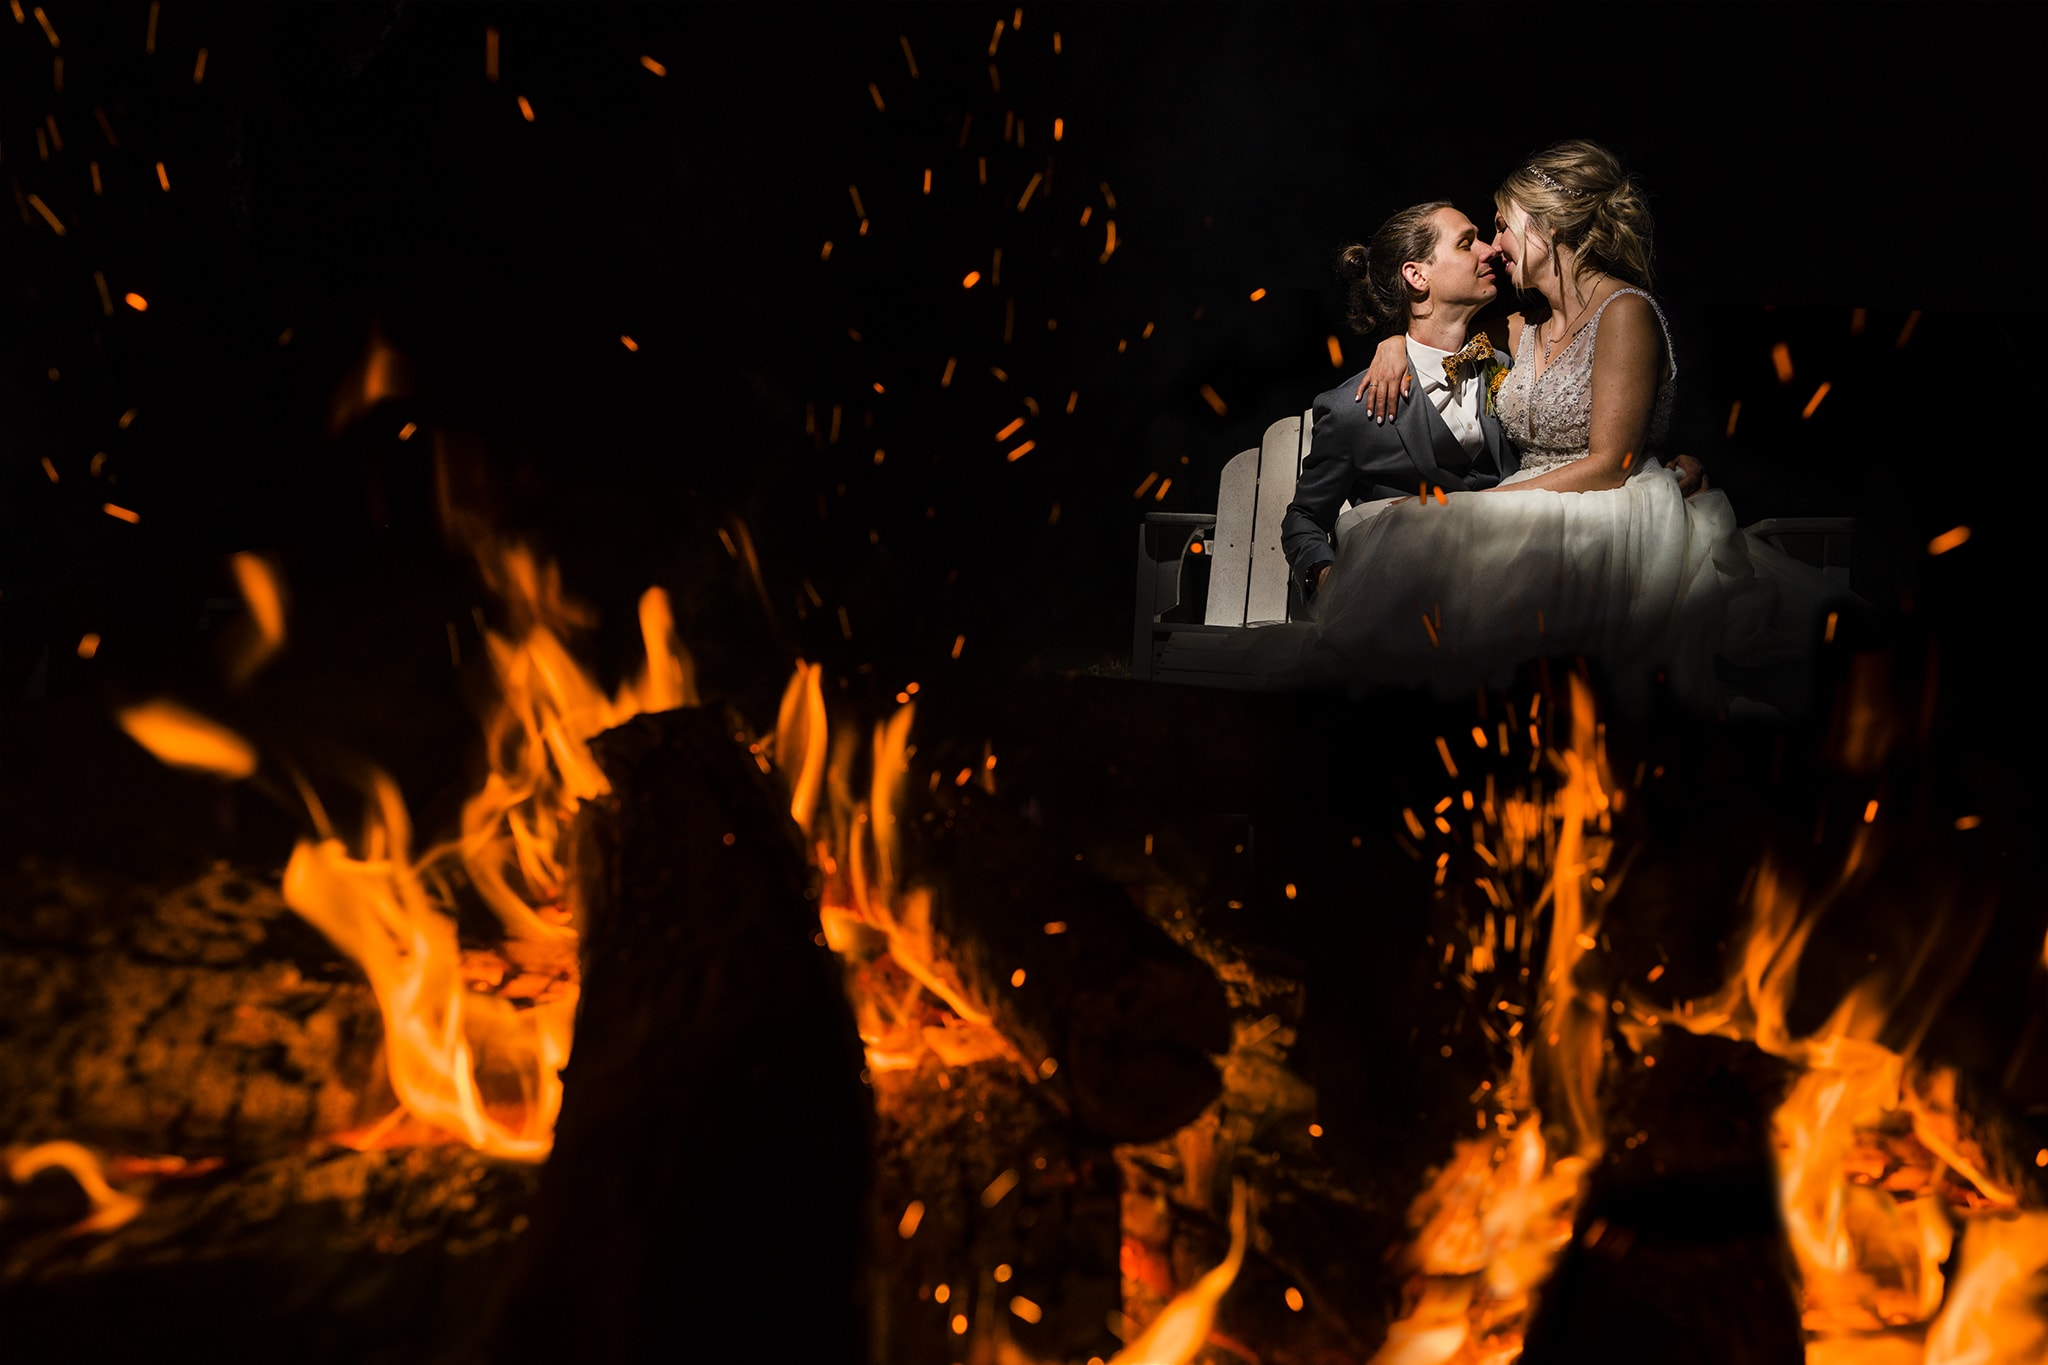 Bride and groom snuggling by bonfire